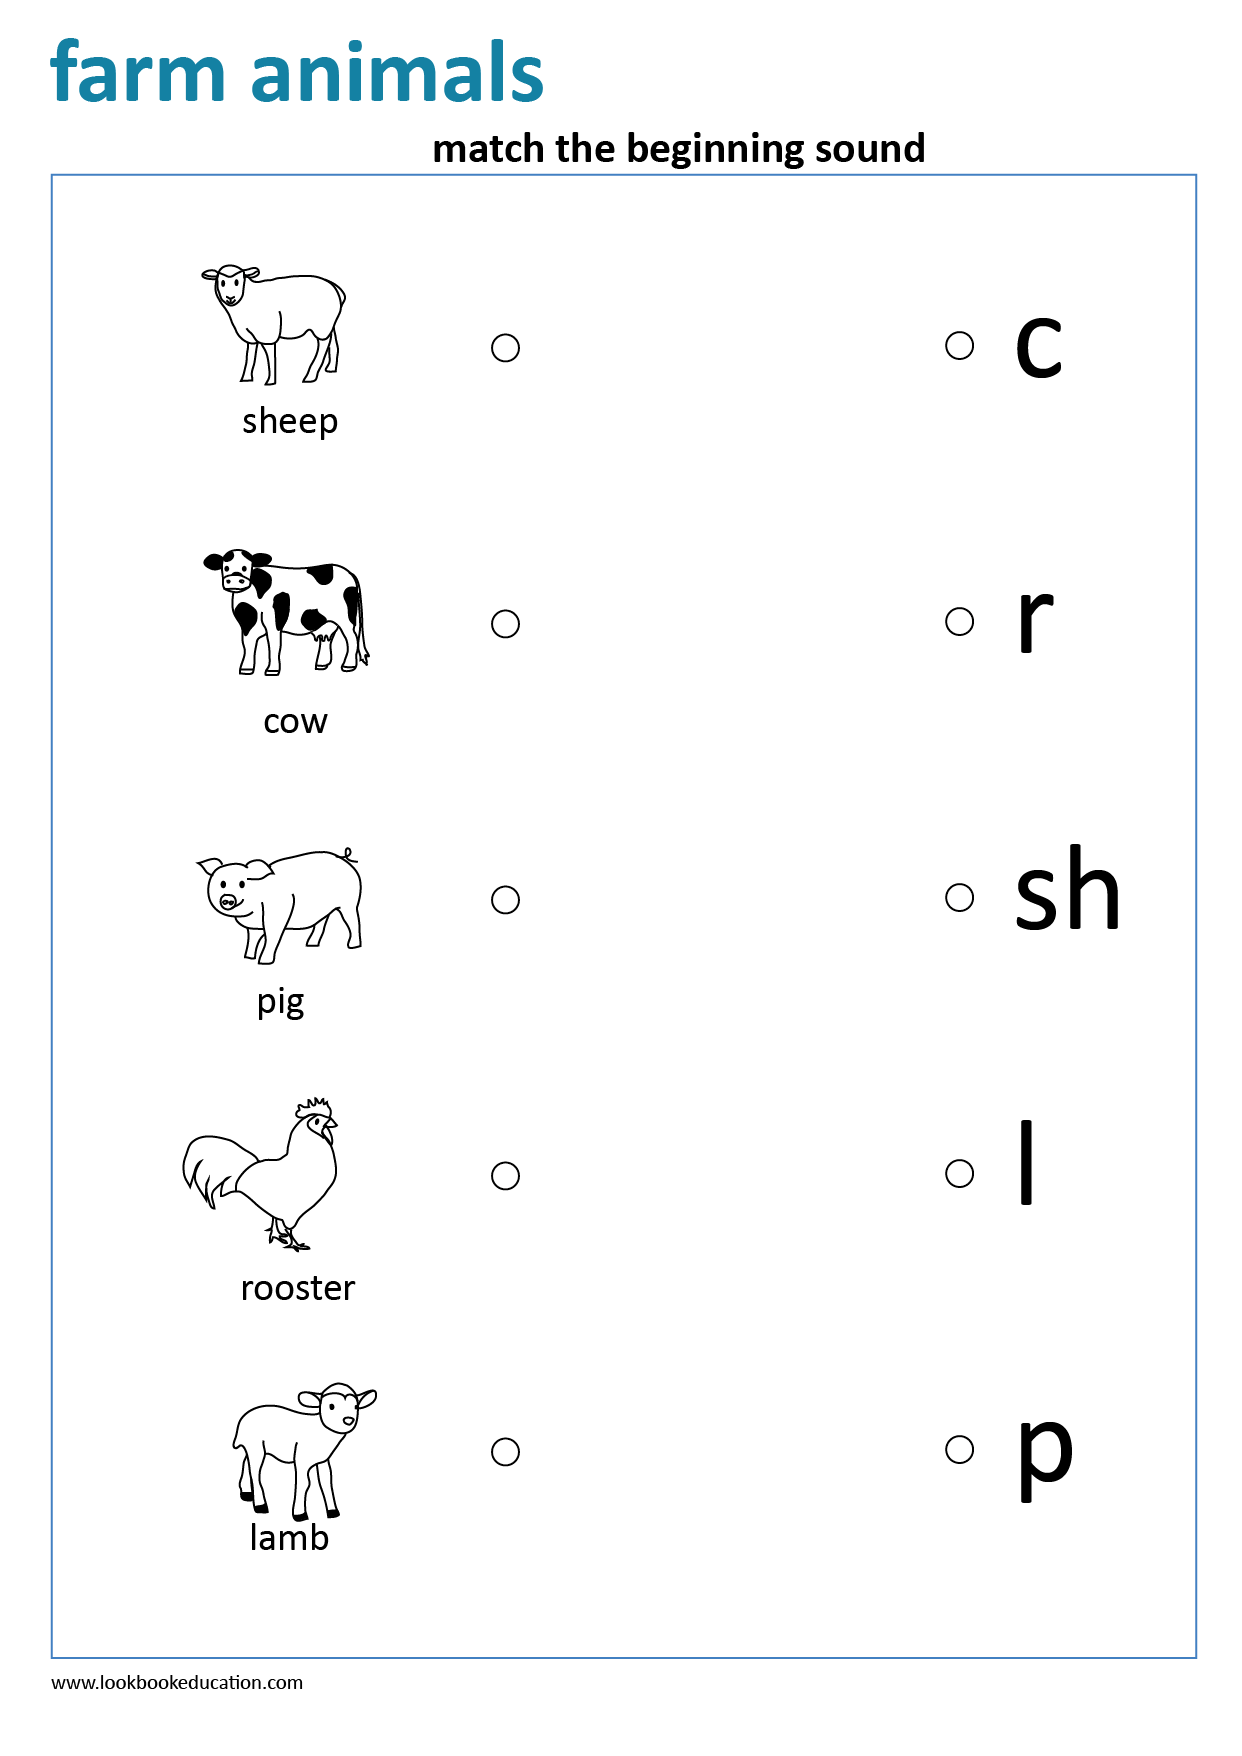 Worksheet Match The Beginning Sound Farm Animals